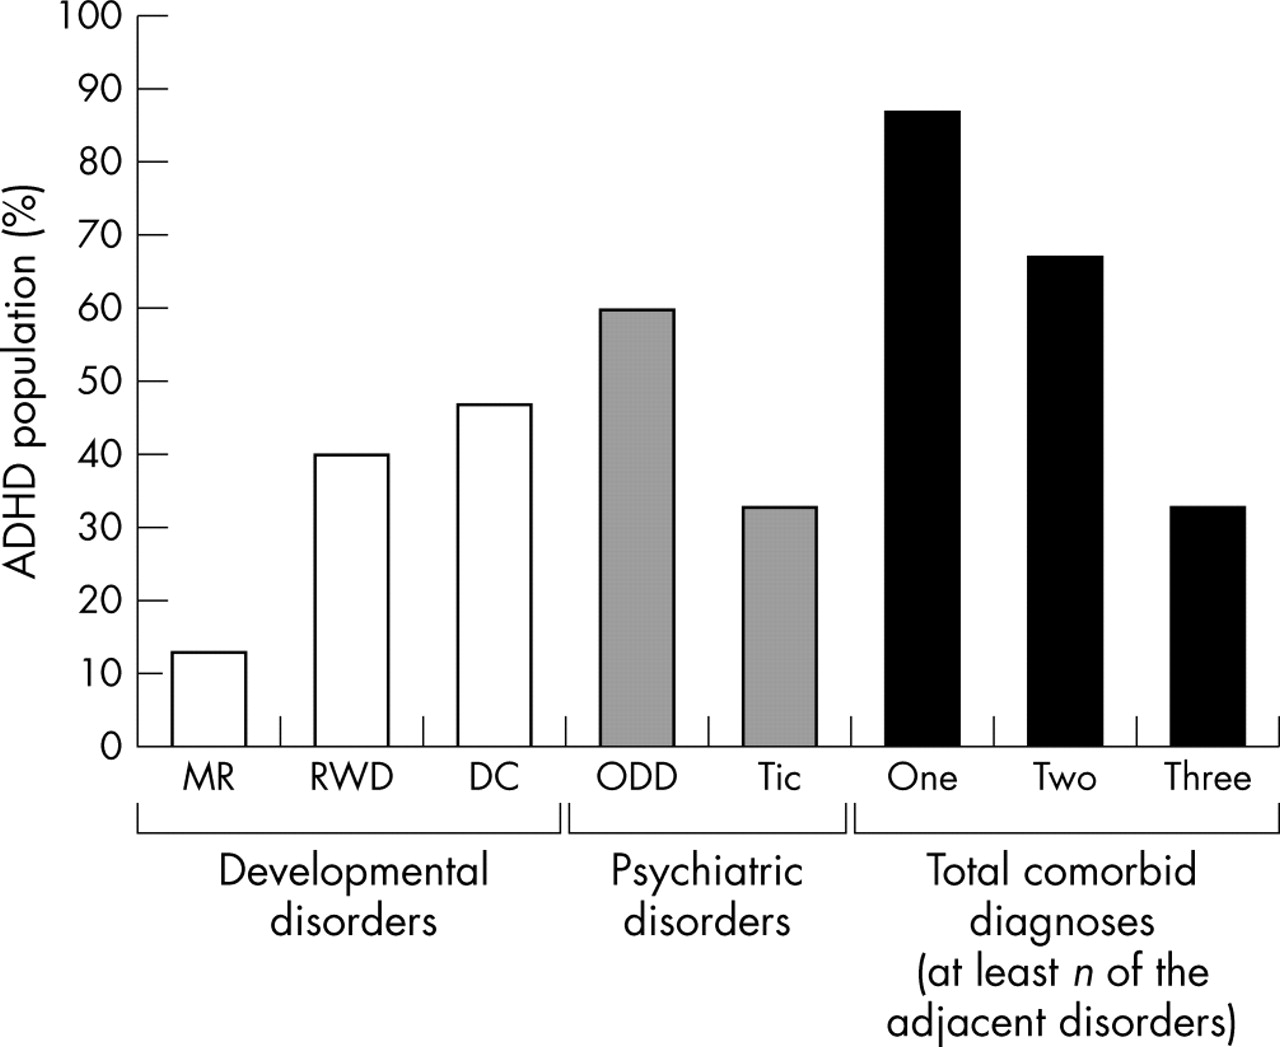 The effect of ADHD on the life of an individual, their